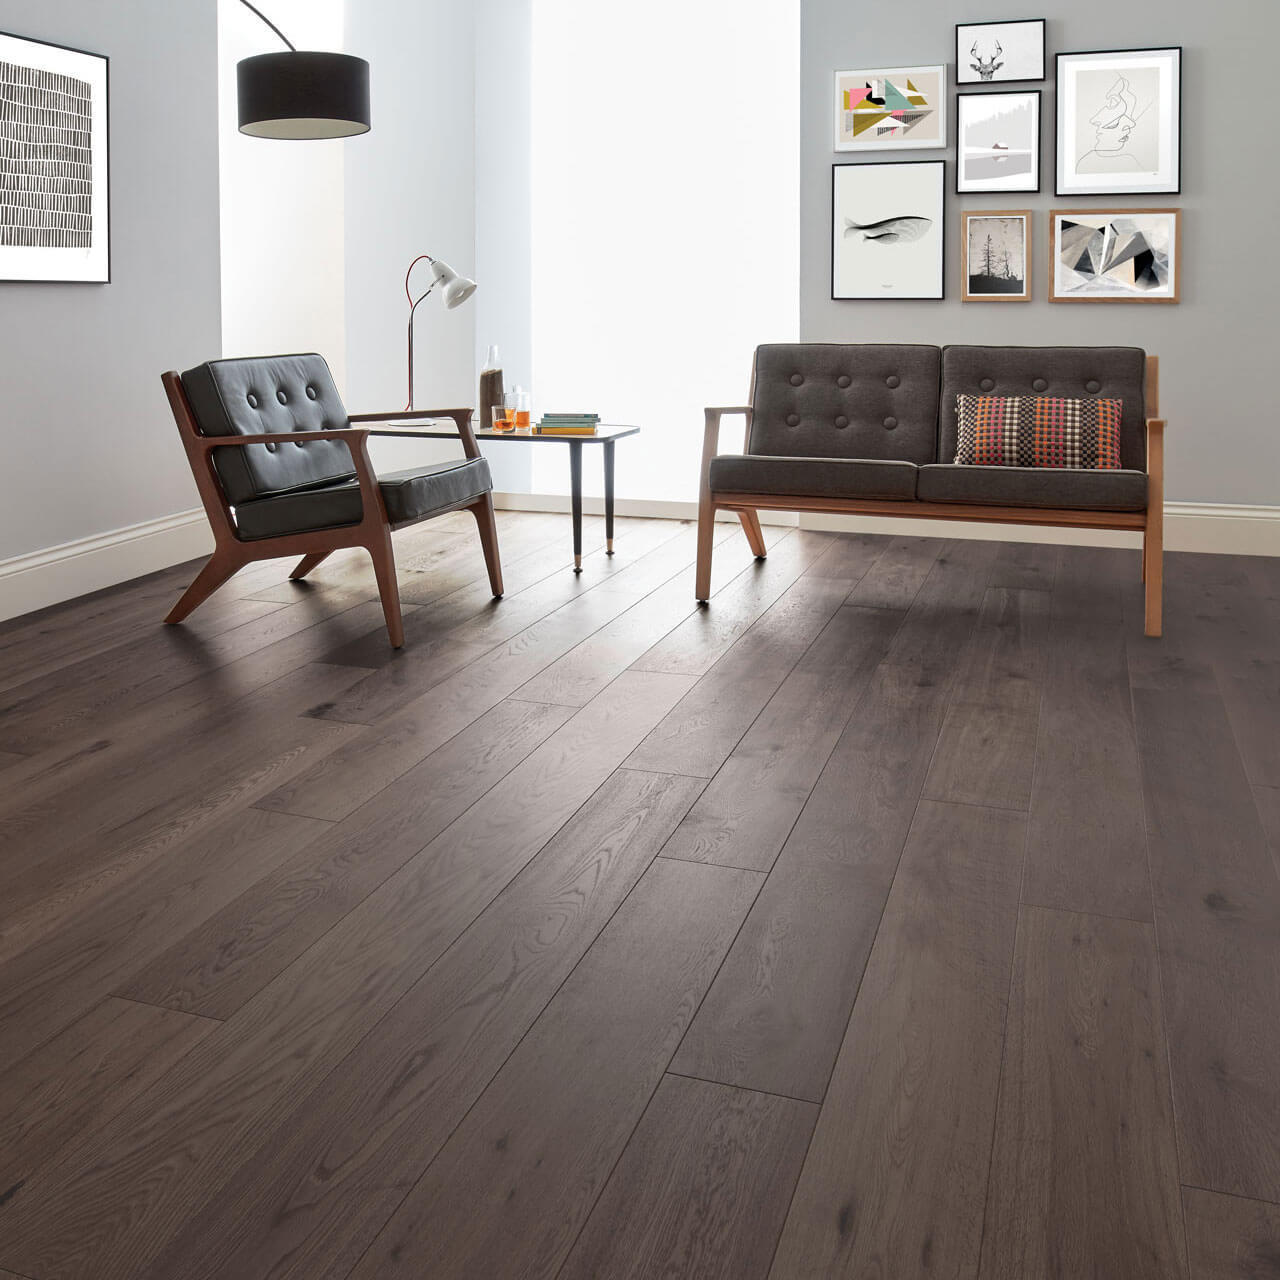 Woodpecker Salcombe Shadow Oak Brushed & Matt Lacquered 45-WAC-017 Engineered Wood Flooring